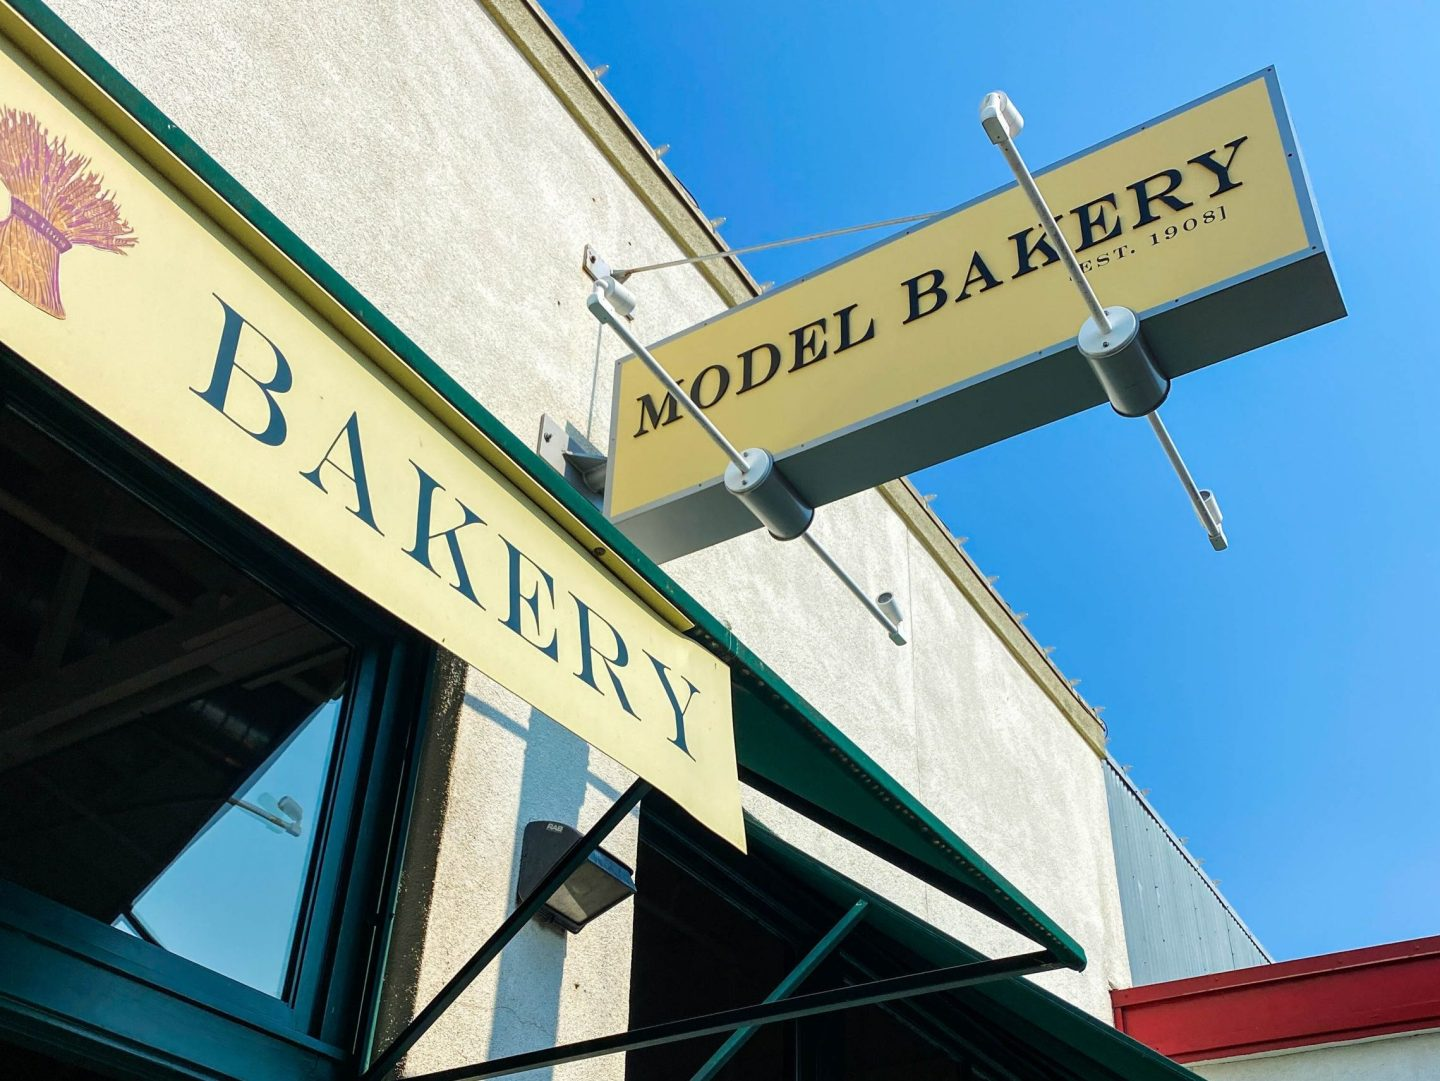 This famous bakery is home to one of Oprah's (and my mom's!) favorite things: fluffy, fresh English muffins!